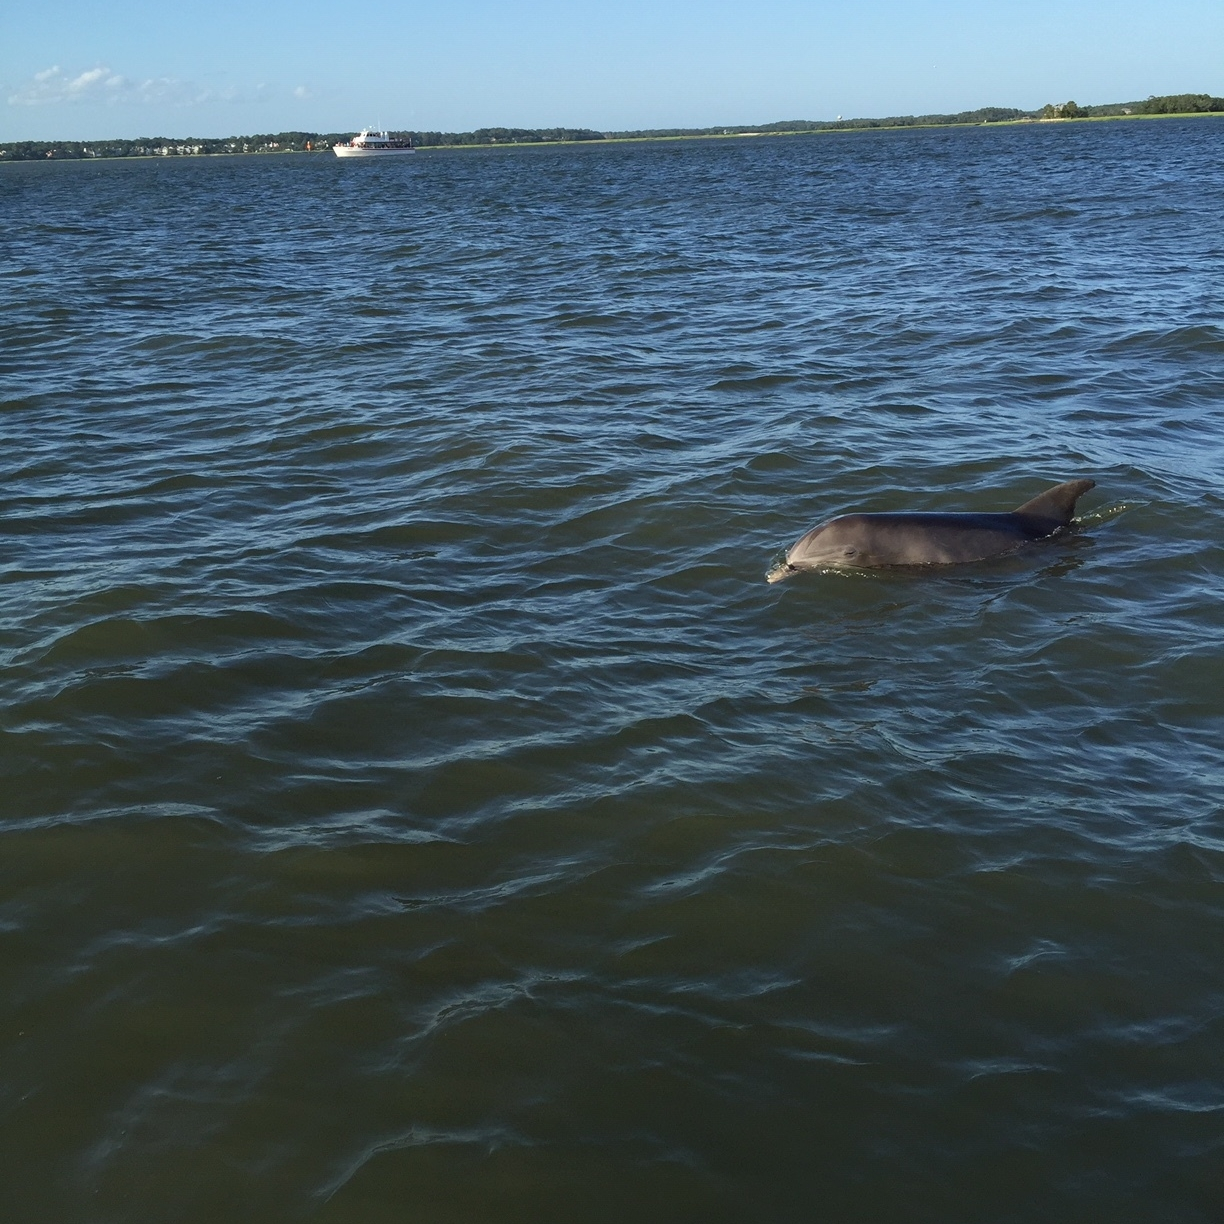 It is quite common to have dolphins join your charter tour on the ride out.